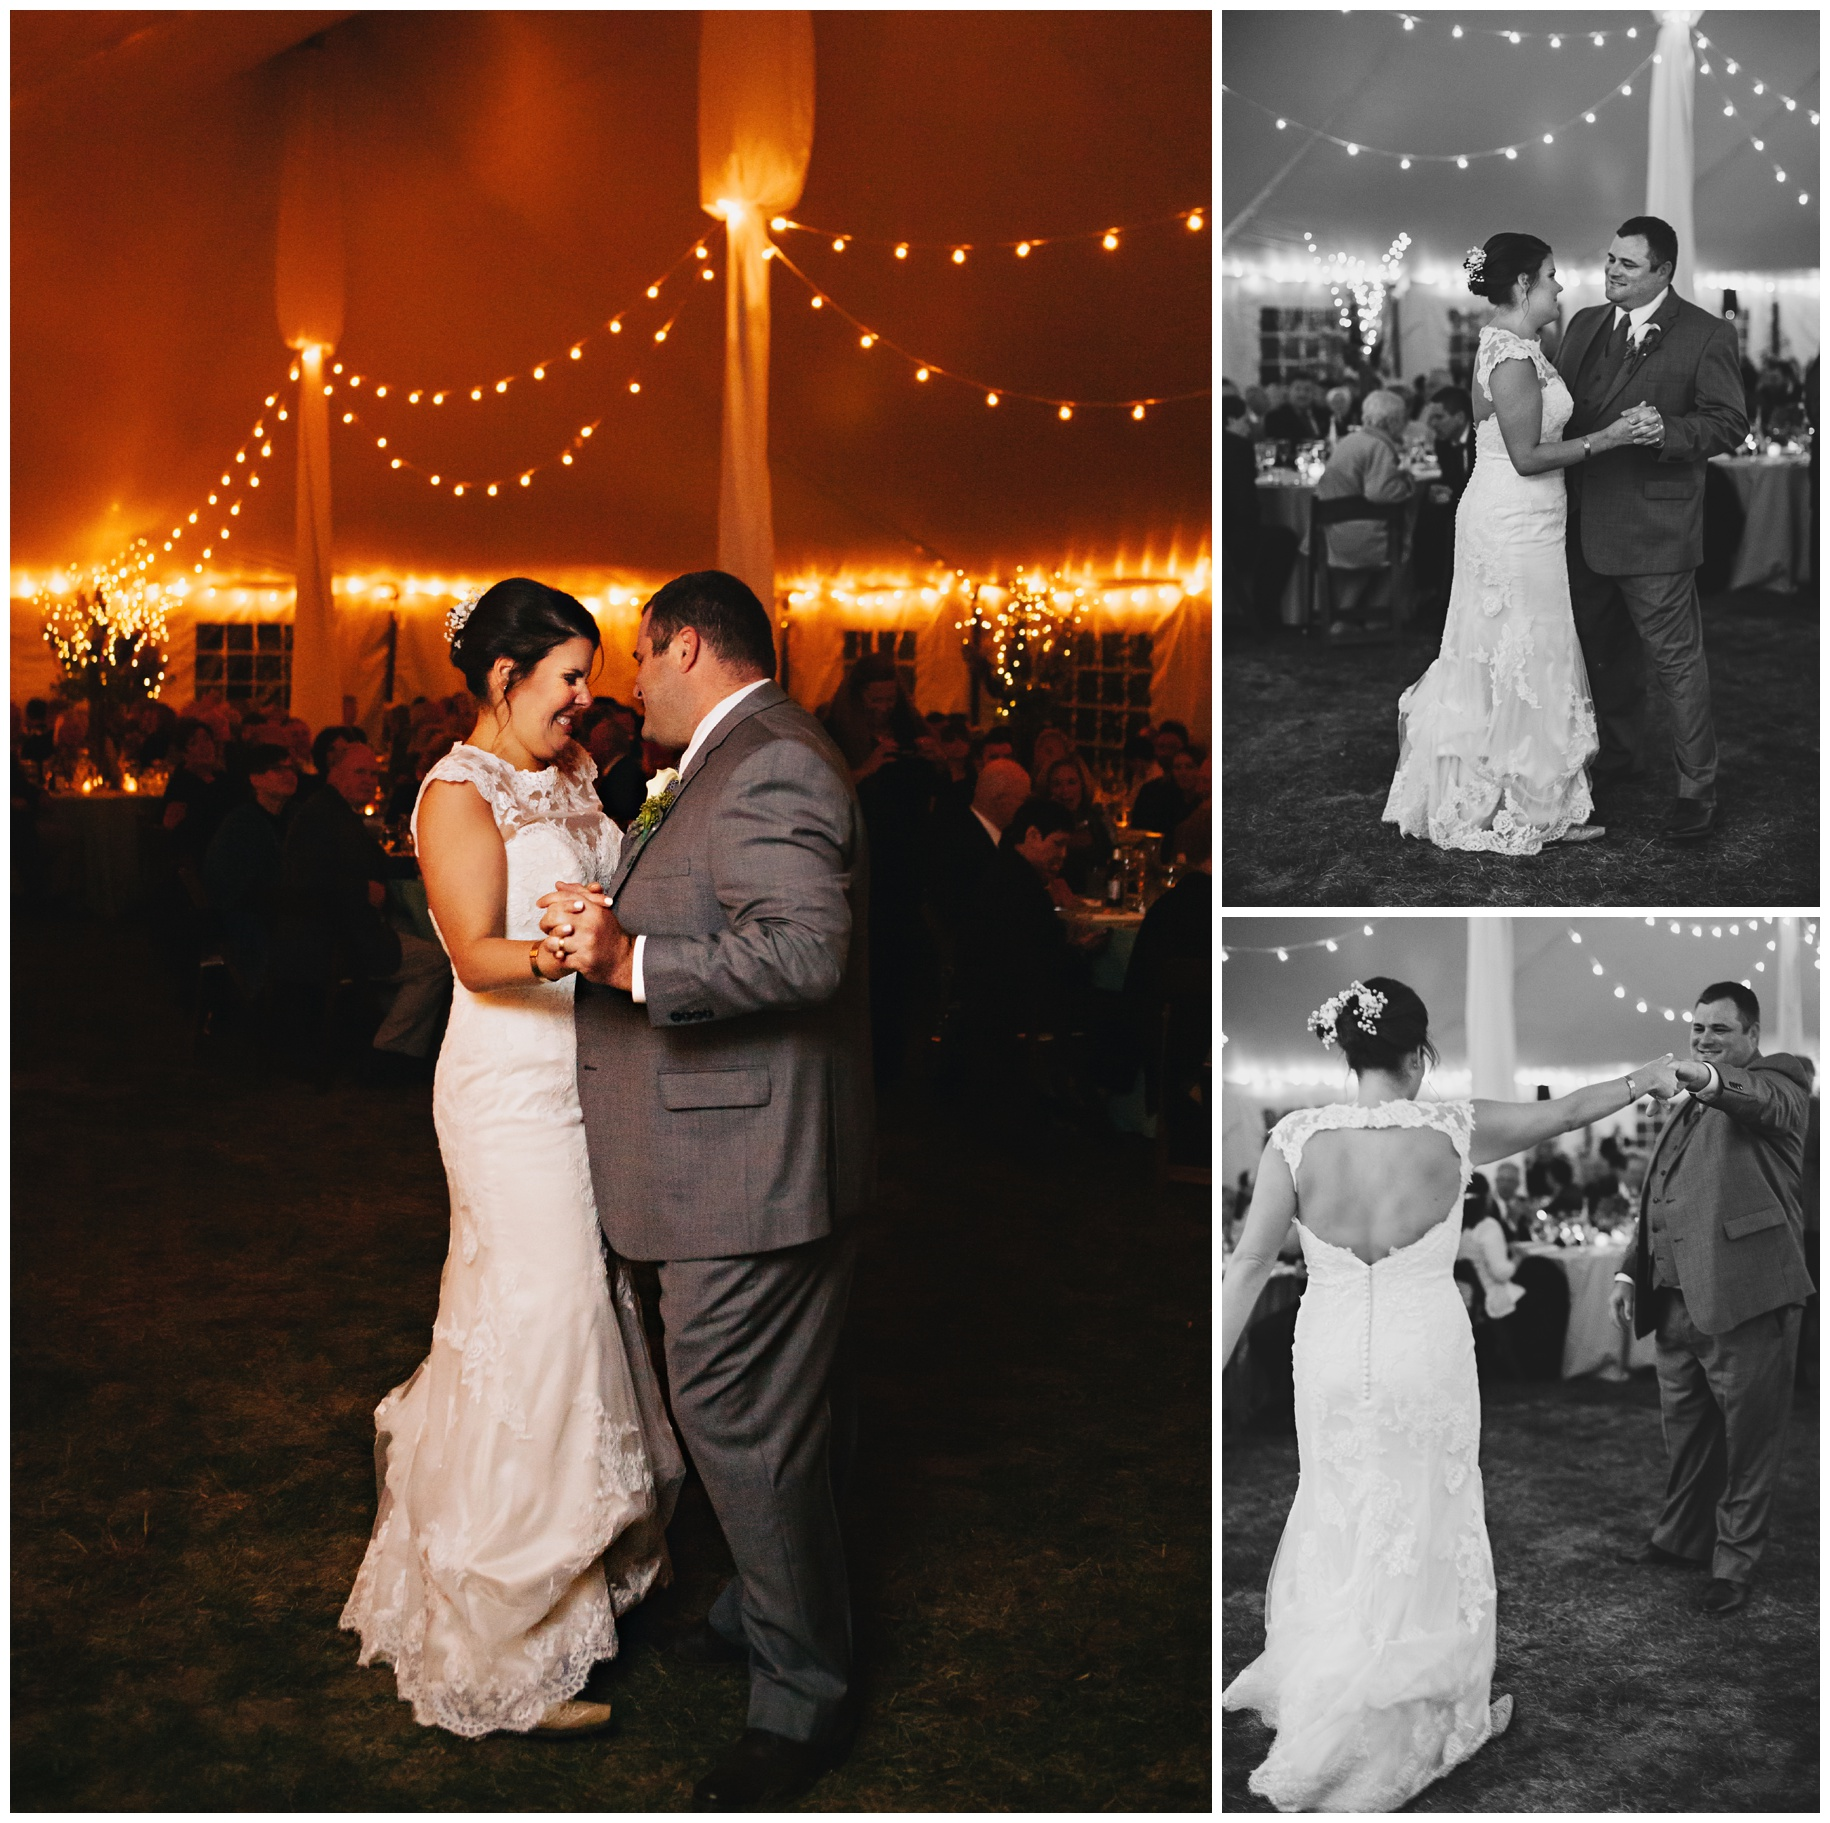 maineweddingphotographer_laudholmfarm_wells_barn_wedding-031